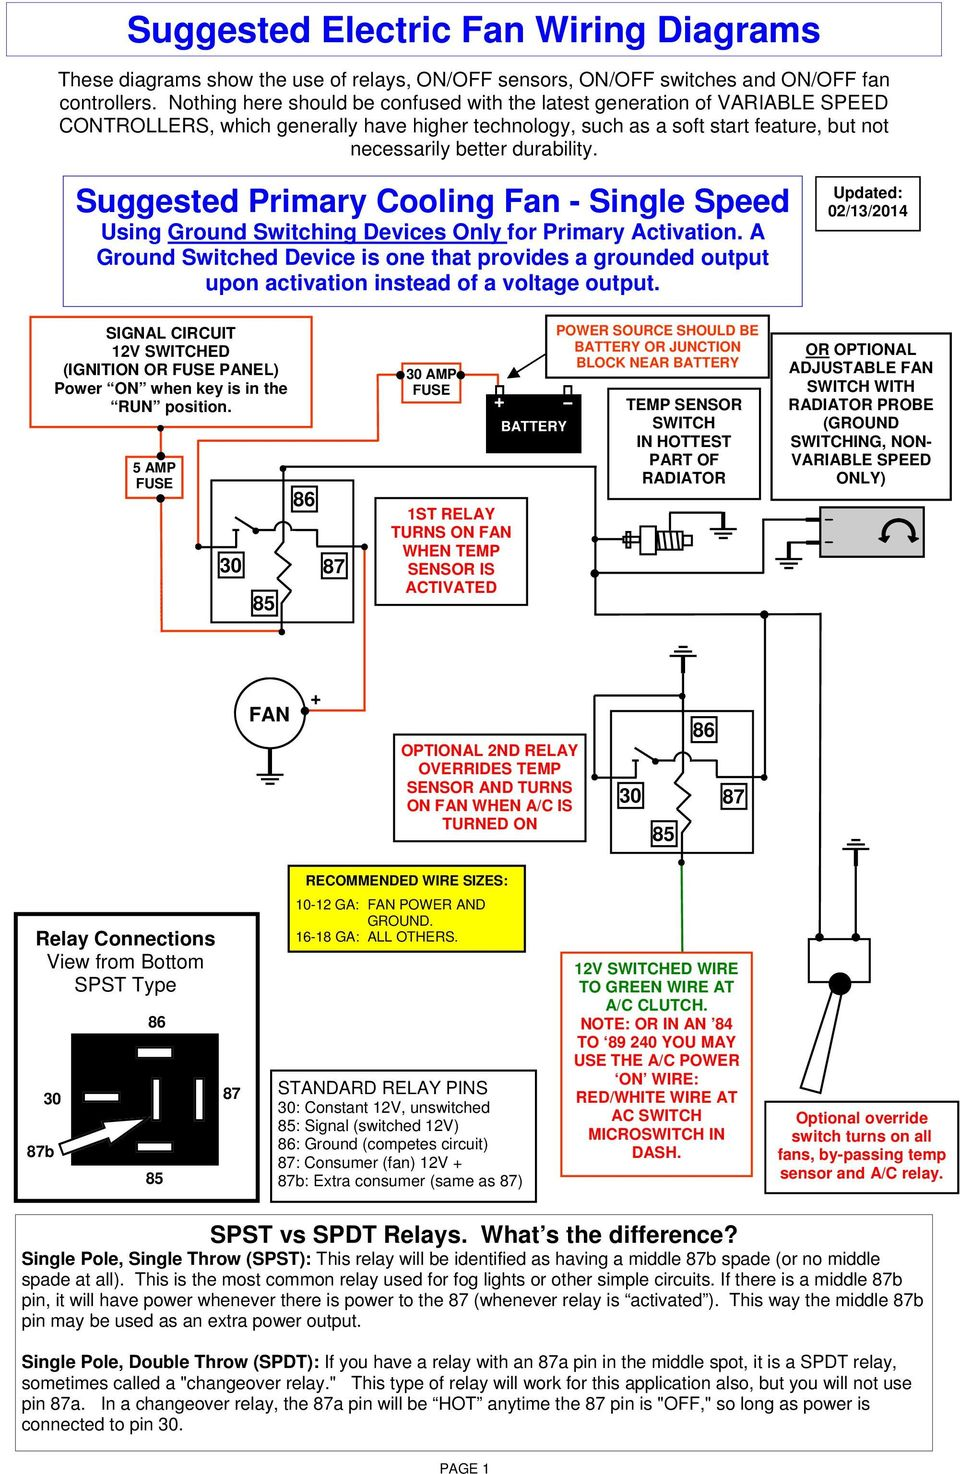 Electric Fan 5 Wire Relay Wiring Diagram Electrical Diagrams Ac Suggested Pdf Radiator